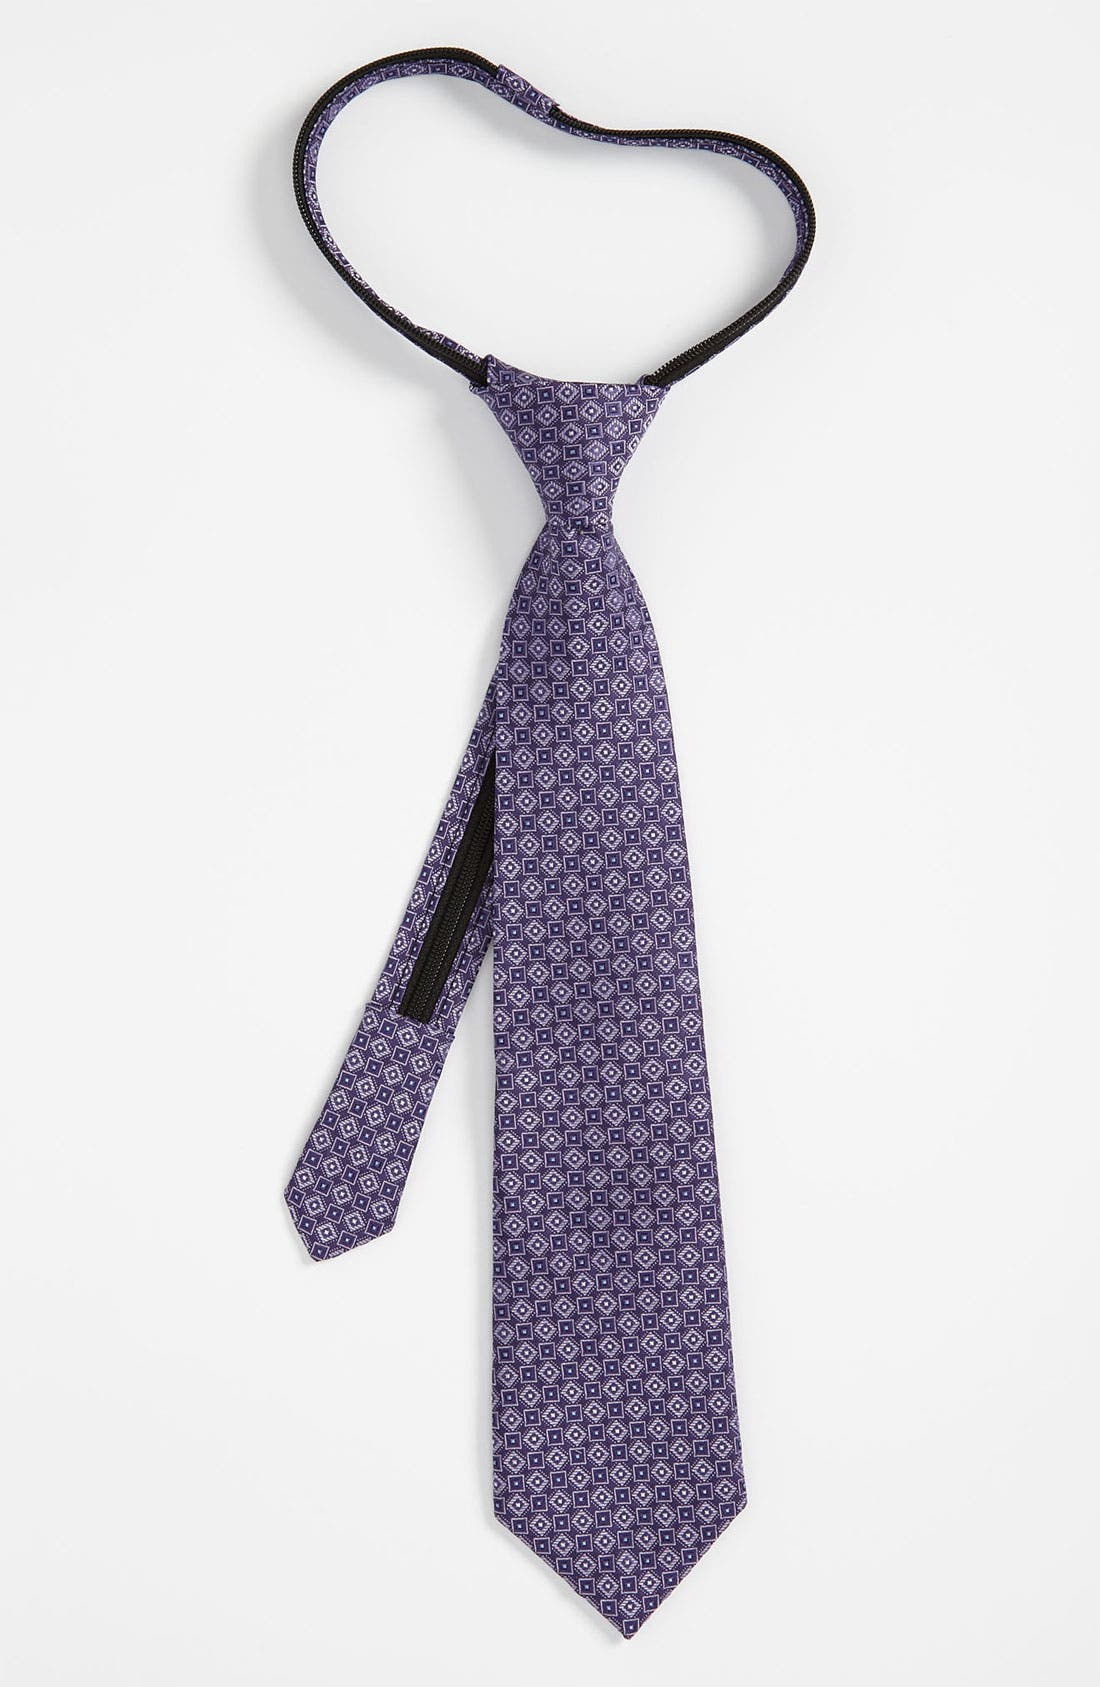 Main Image - Nordstrom Zipper Tie (Little Boys)